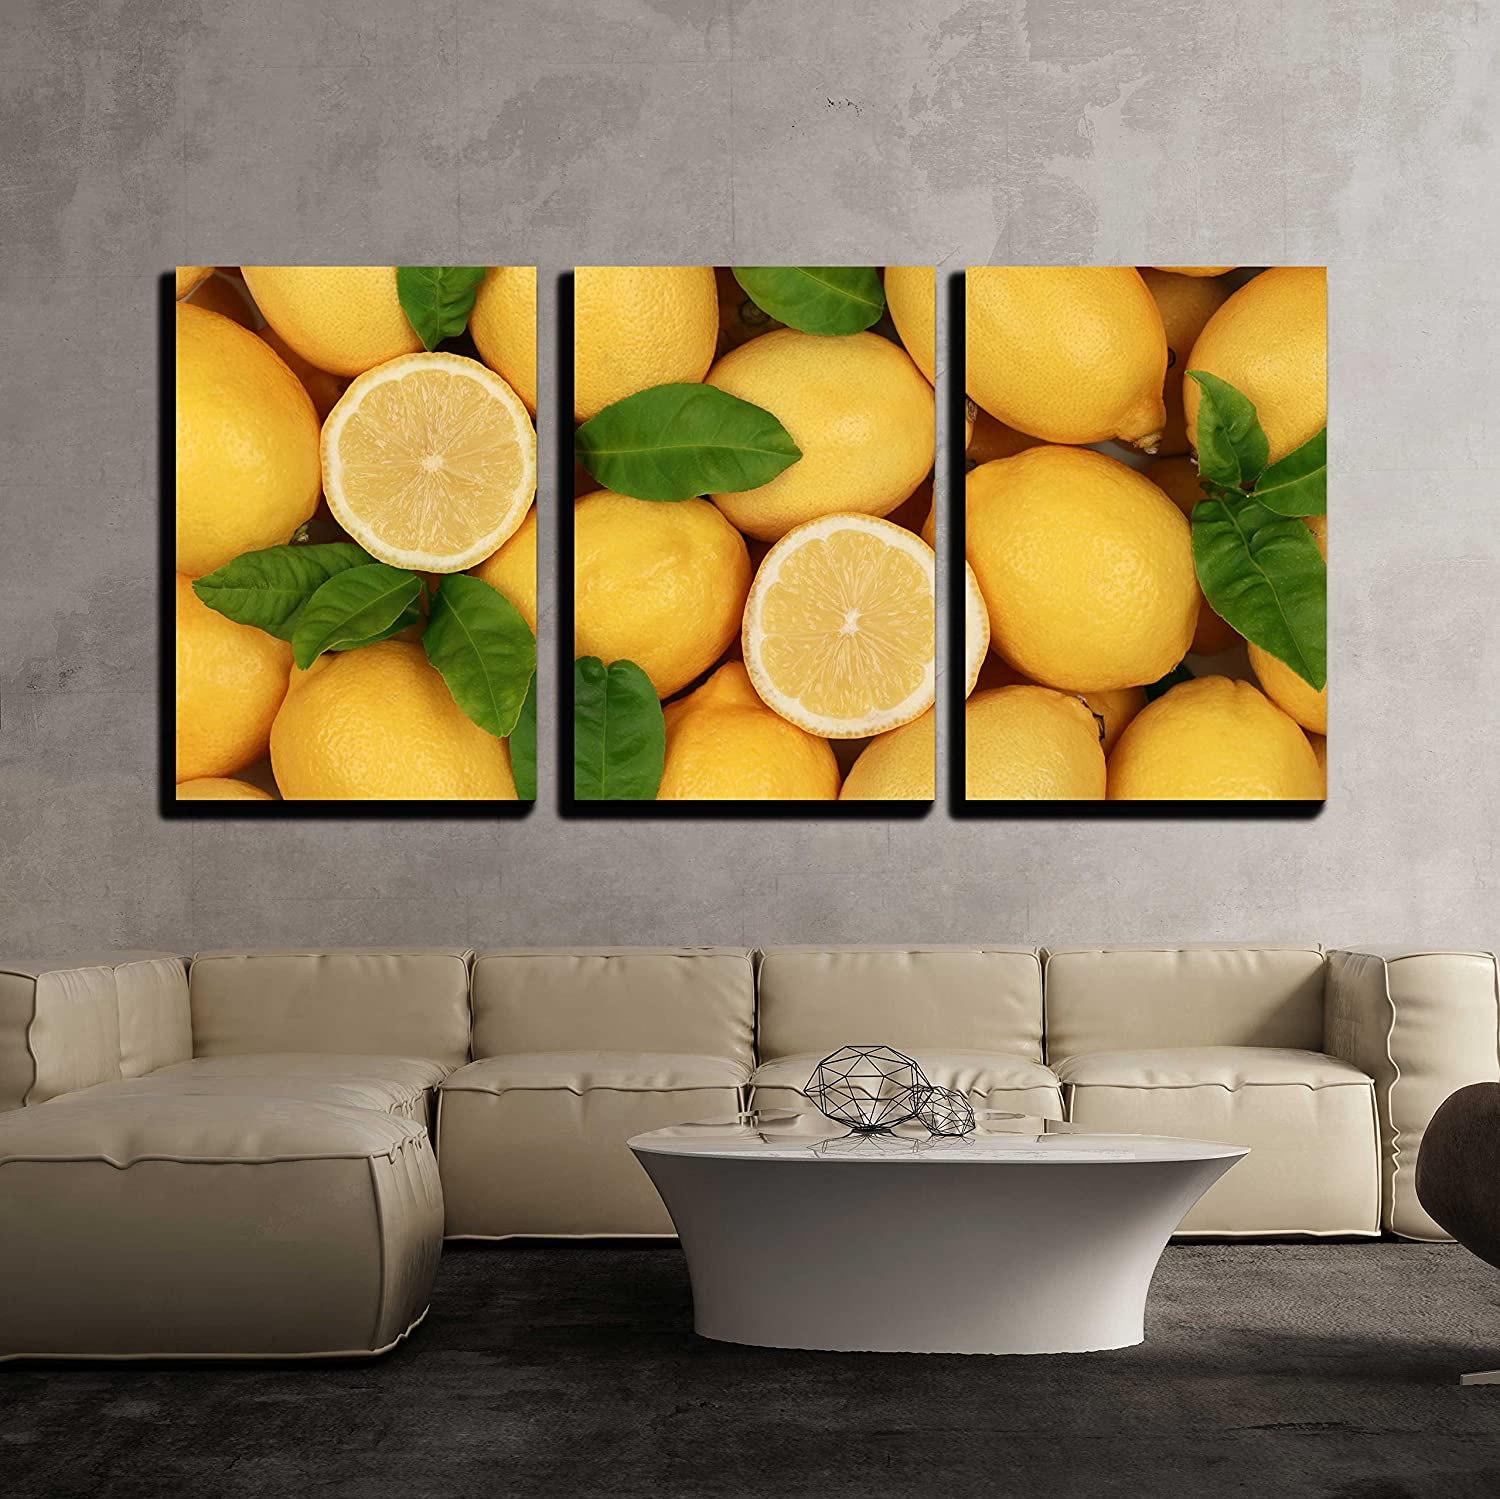 wall26-3 Piece Canvas Wall Art - Group of Fresh Lemons with Leaves ...